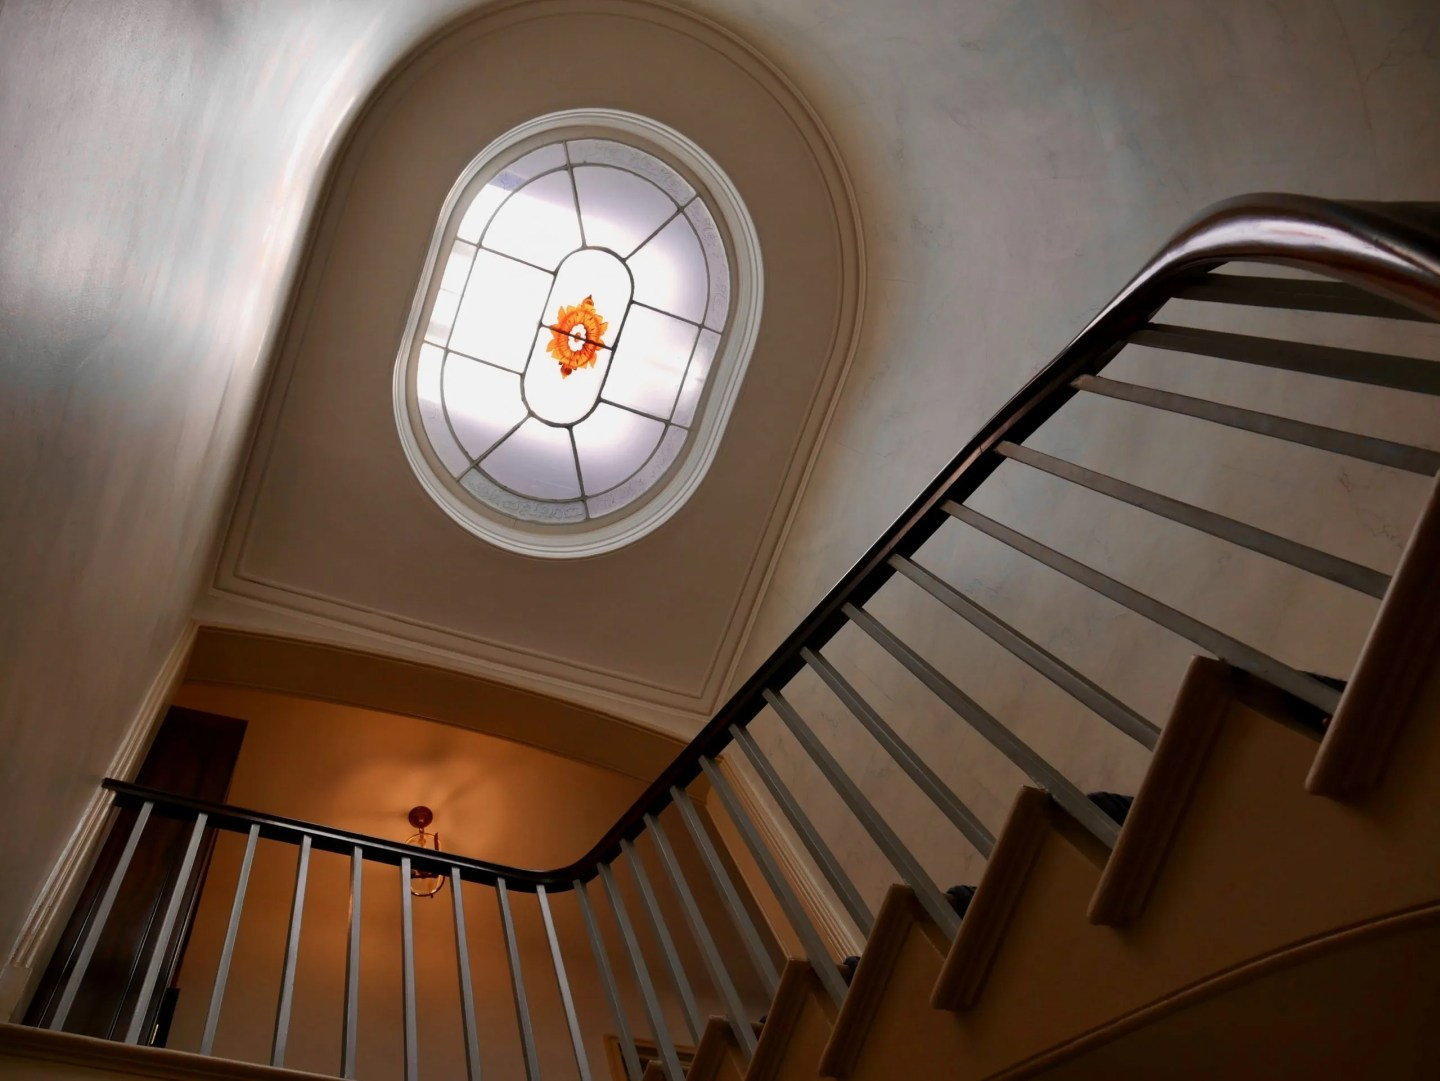 Looking up a stairwell to a fancy stair lantern light